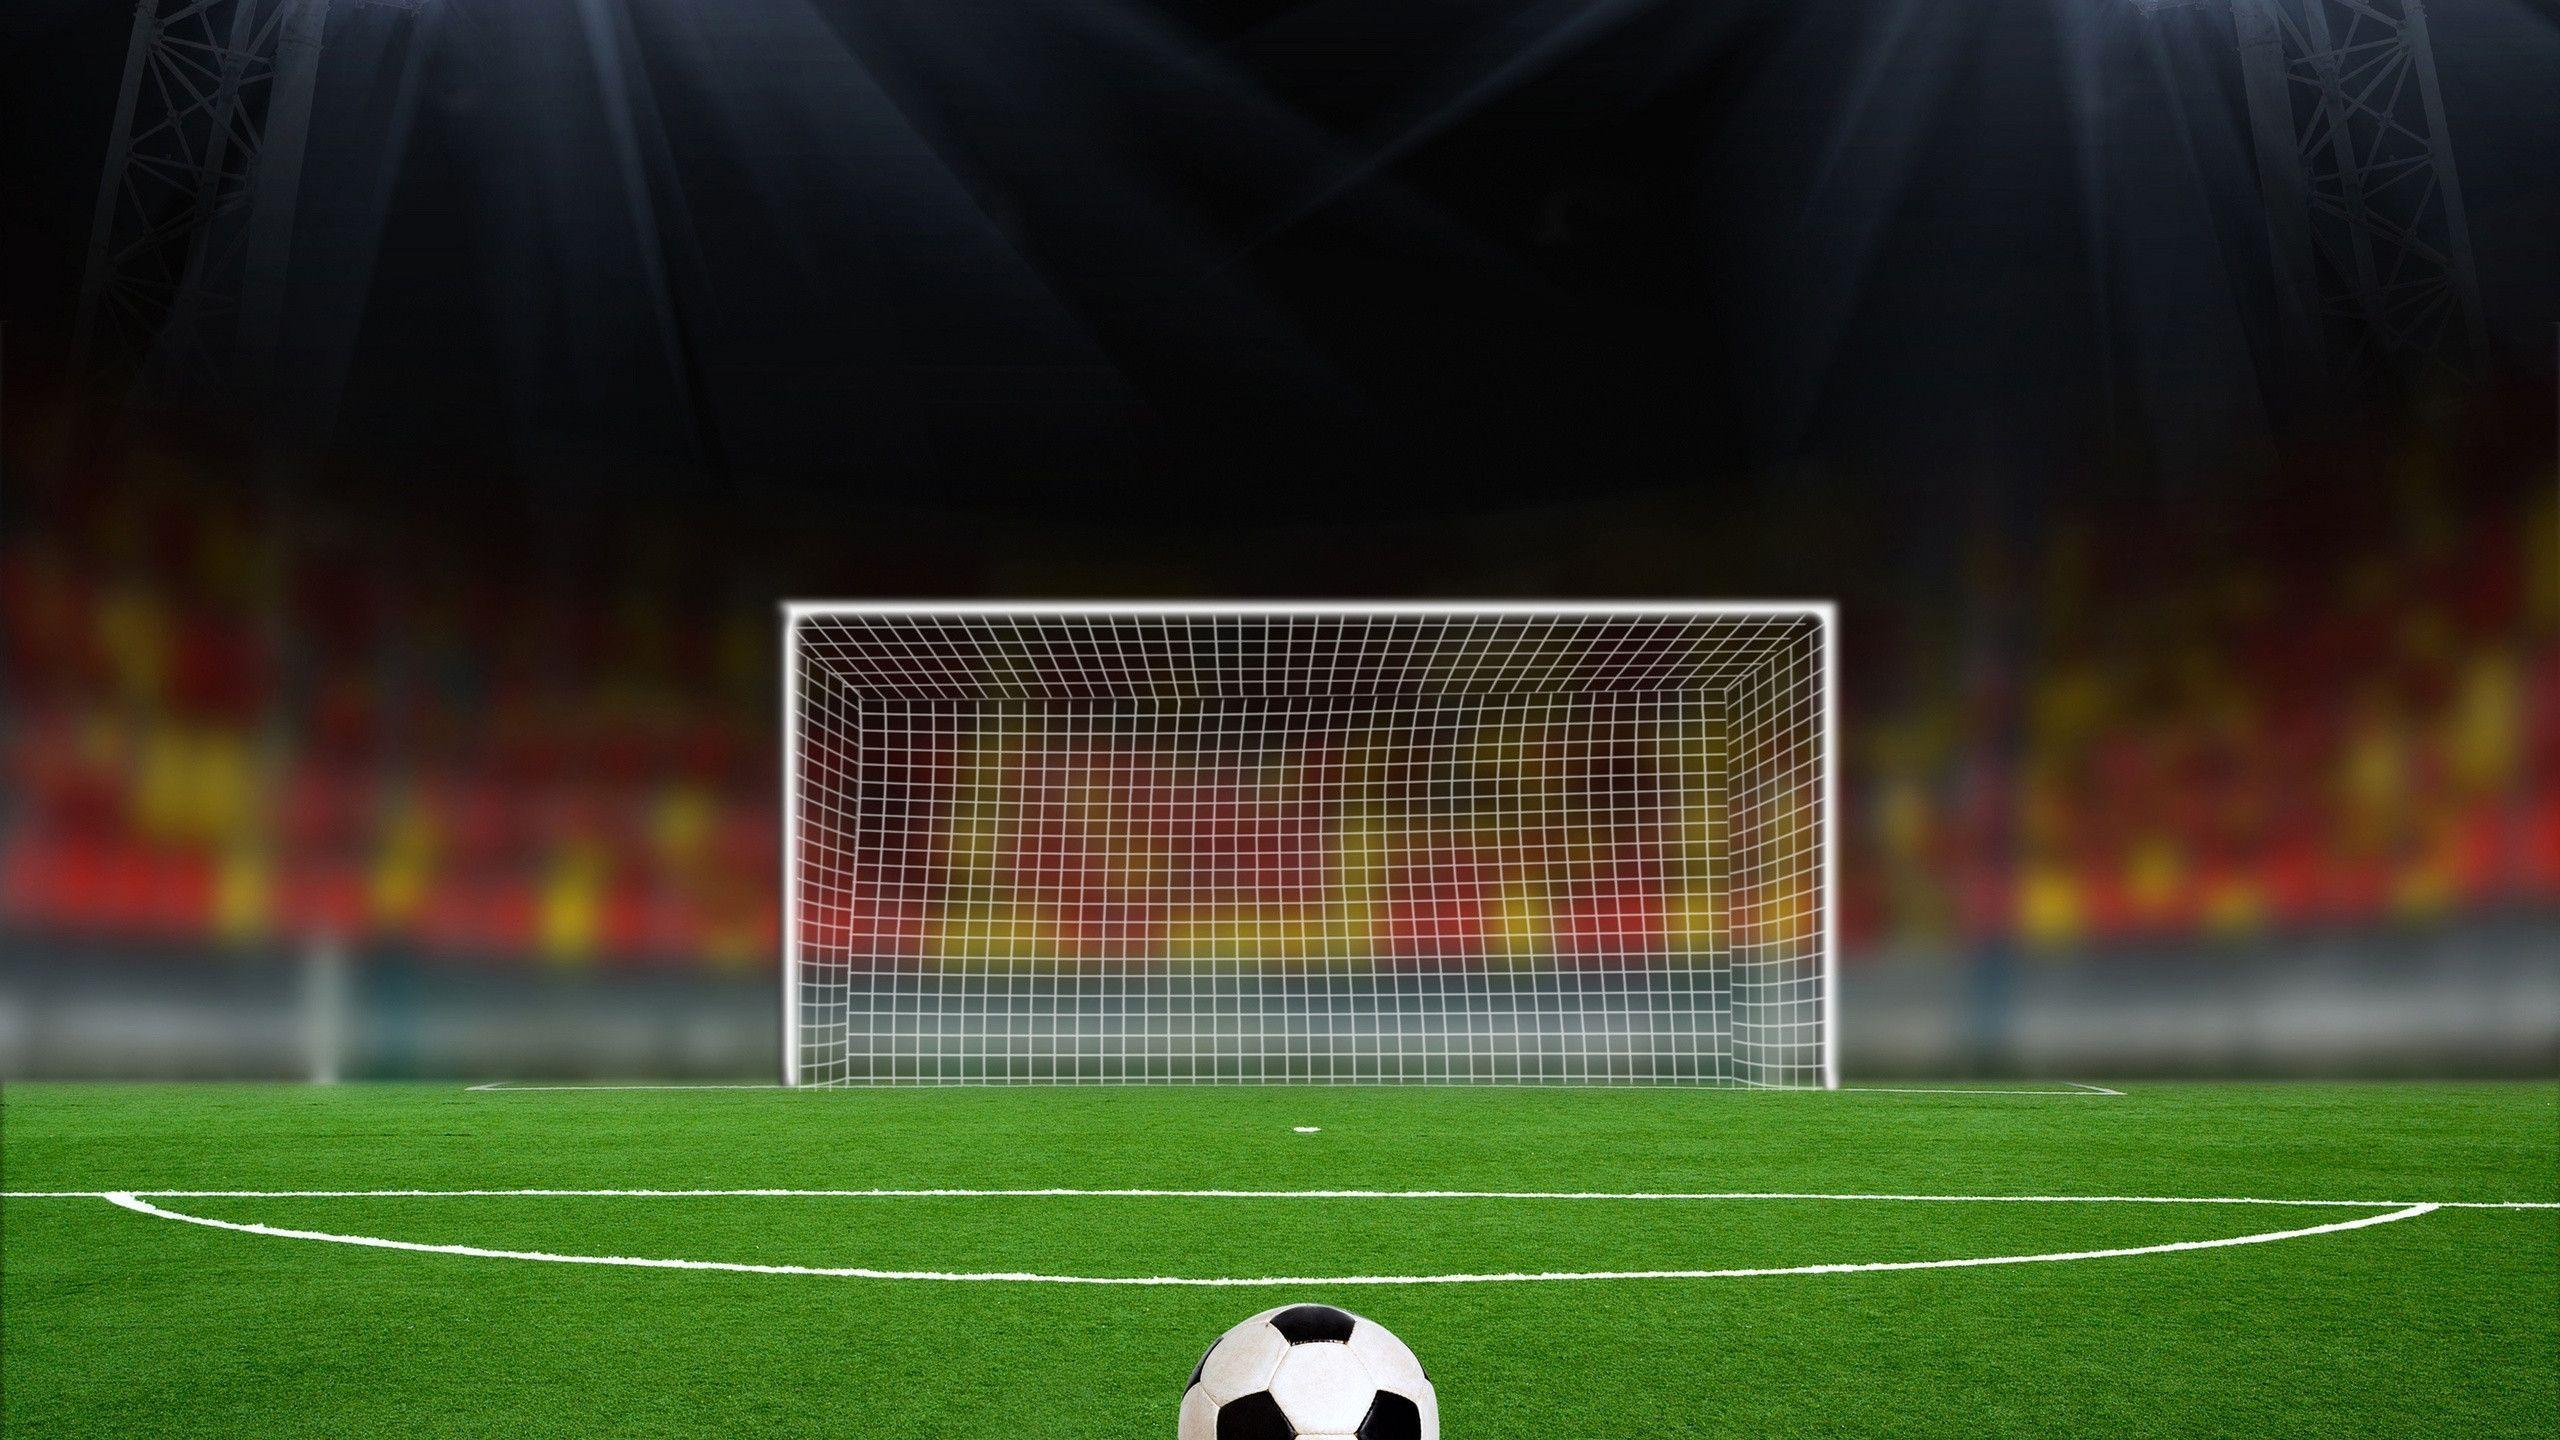 Football Backgrounds - Wallpaper Cave Soccer Backgrounds For Photography